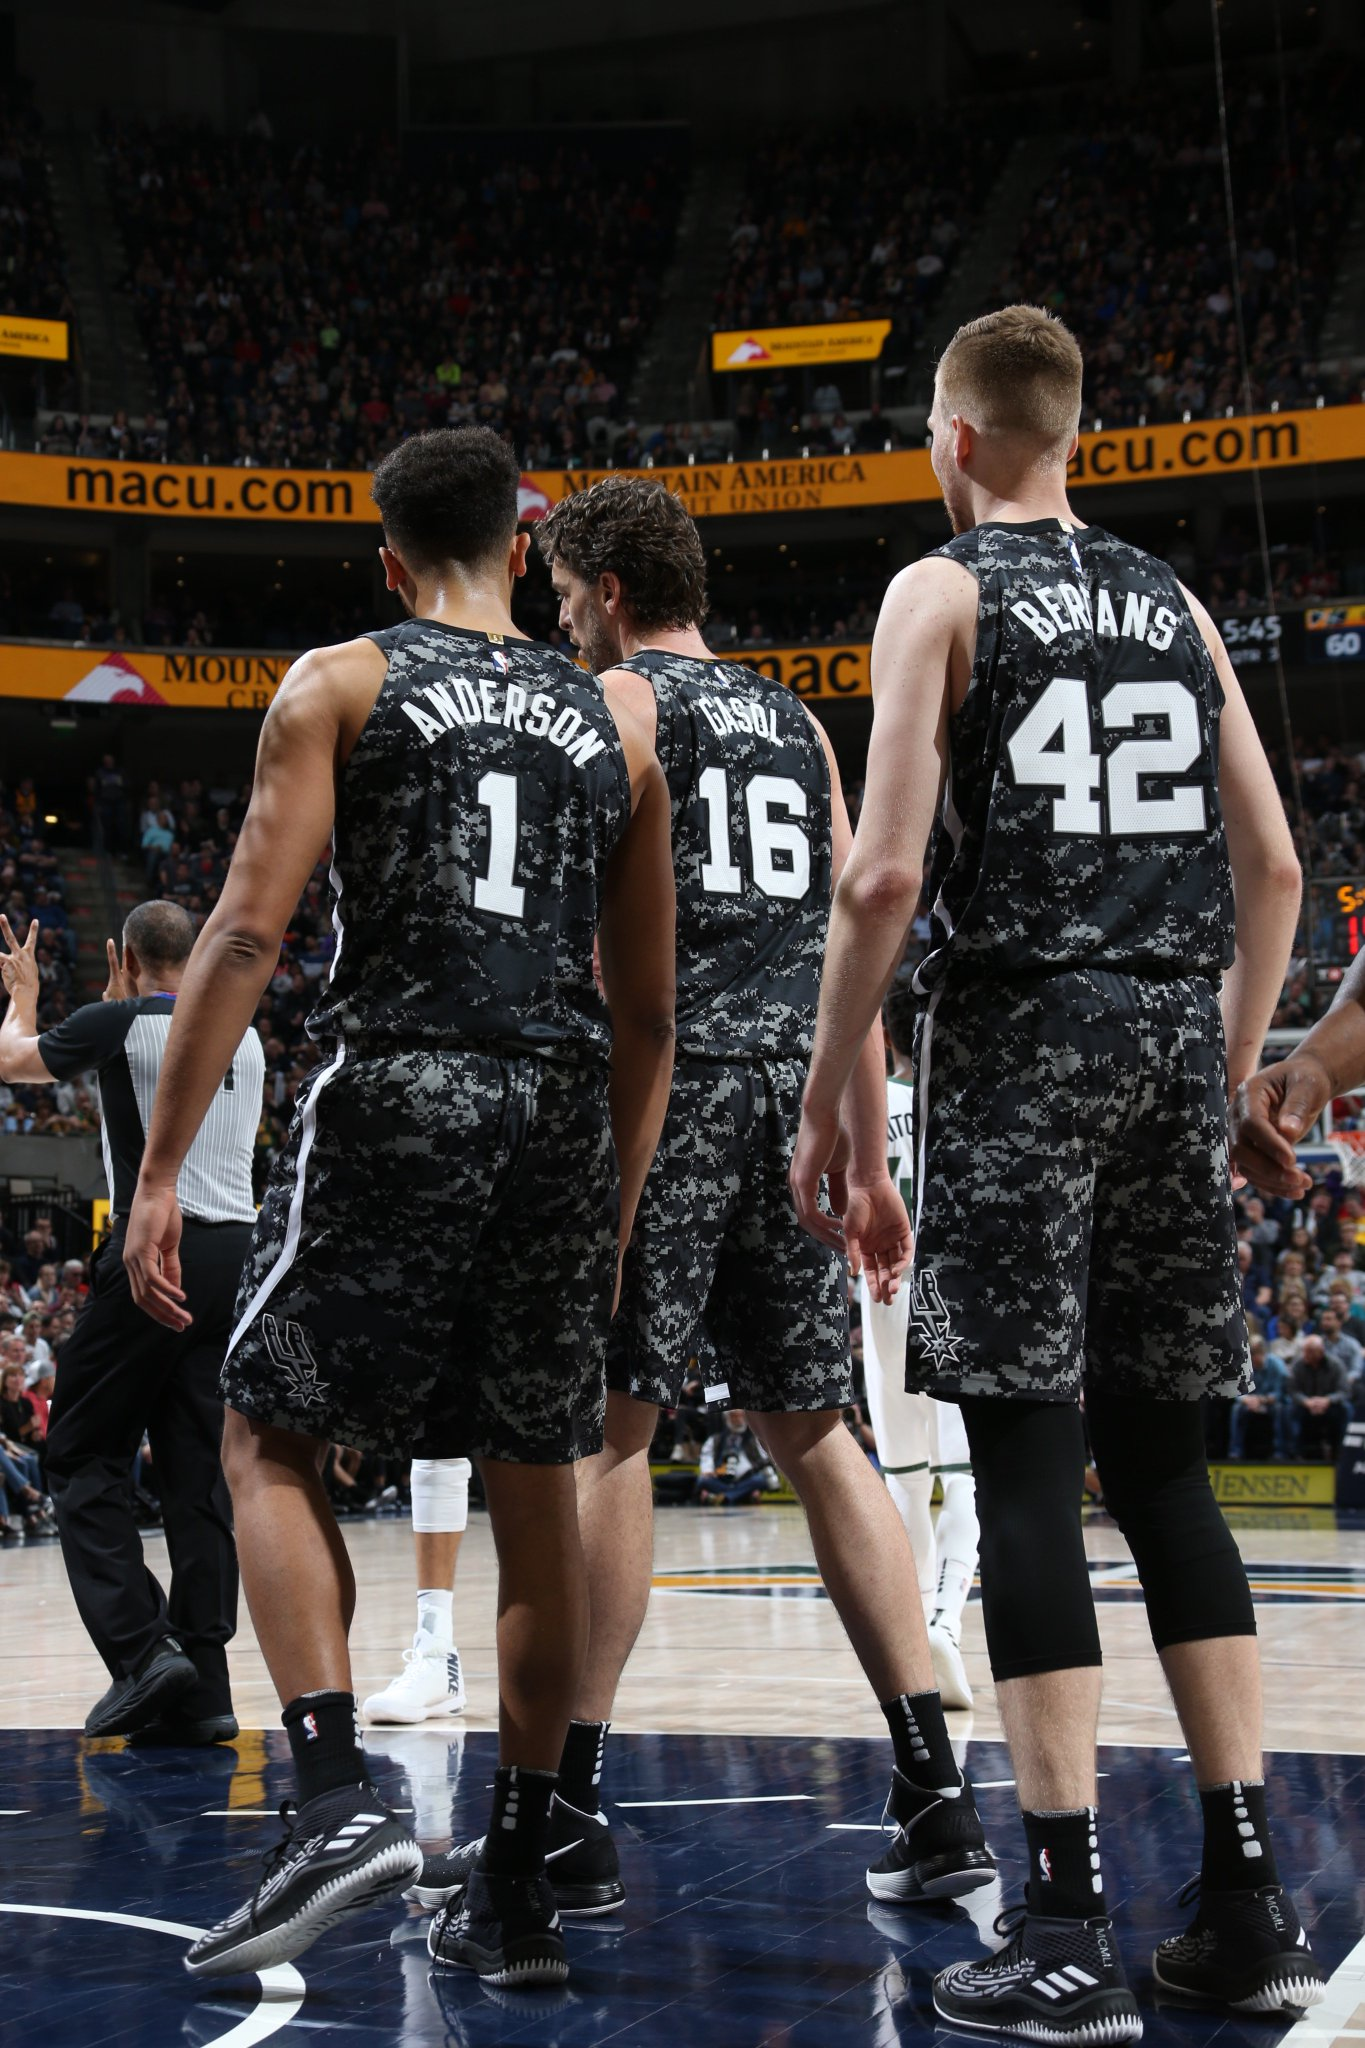 Timeout with 16.7 seconds left, down by two #GoSpursGo https://t.co/0OlTTG4FsH